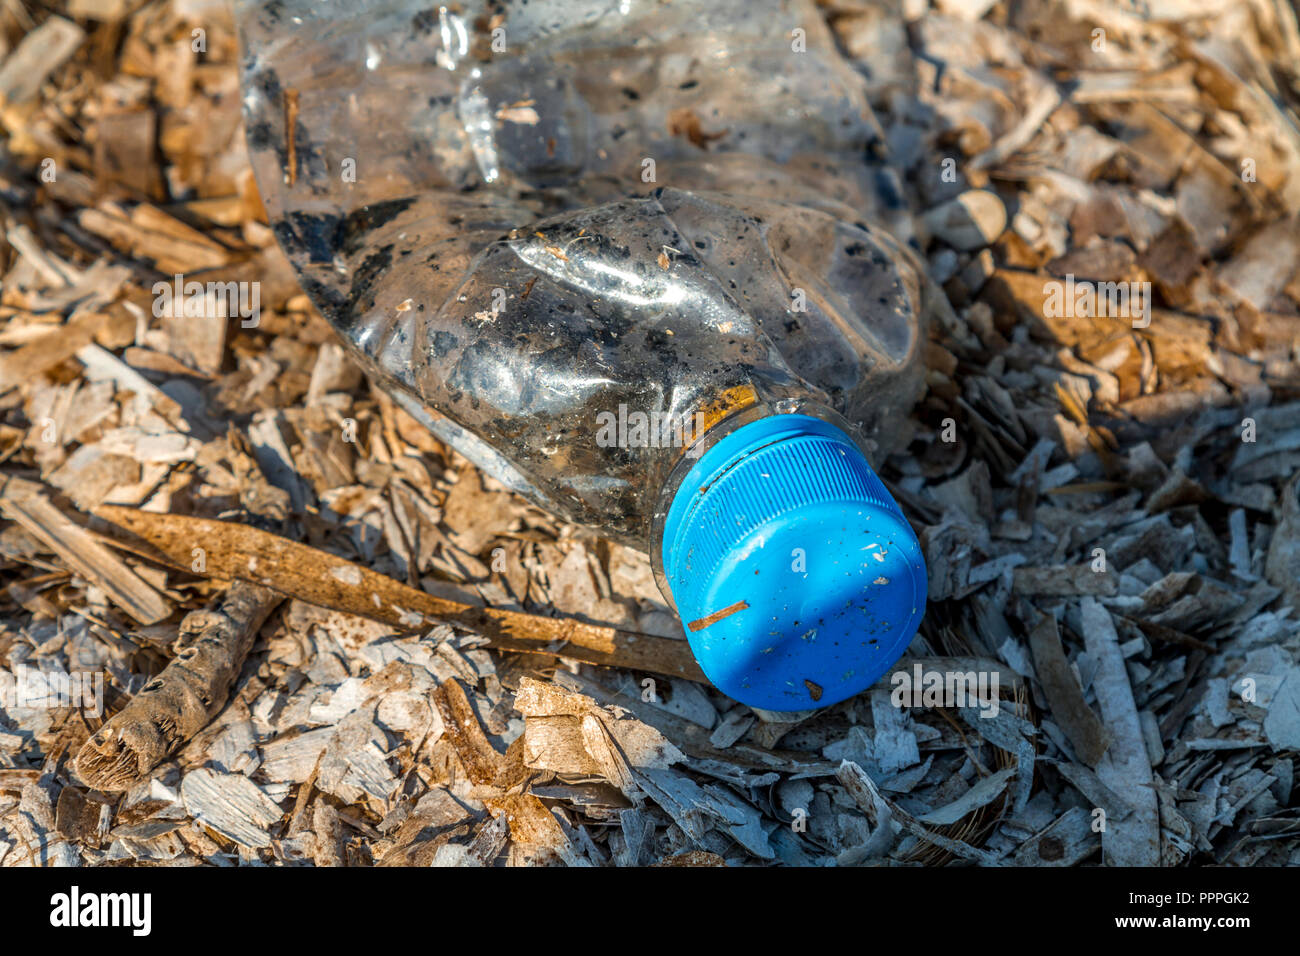 Discarded plastic pet bottle with blue top lying on a bed of dry seaweed on the shoreline causing environmental plastic pollution - Stock Image